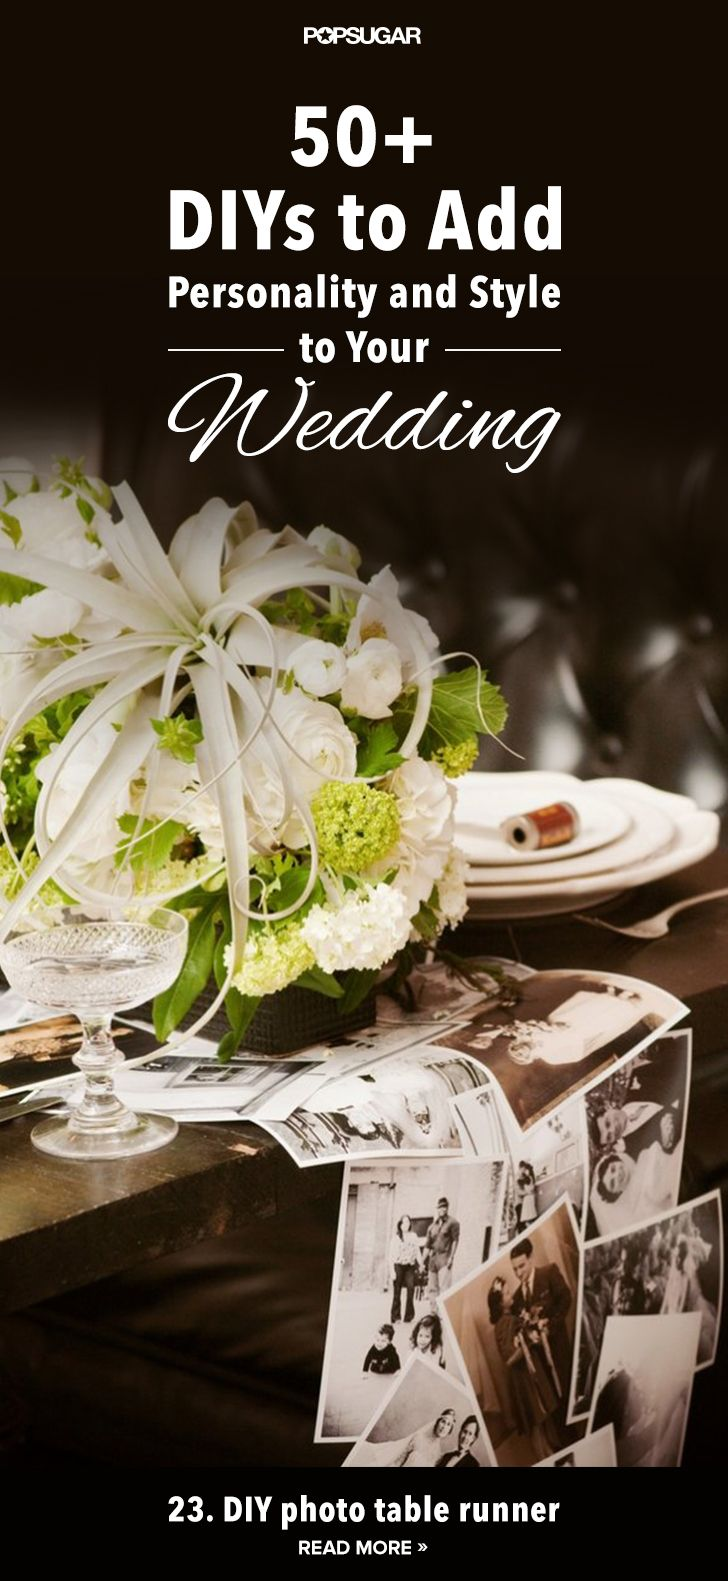 50+ DIYs to Add Personality and Style to Your Wedding